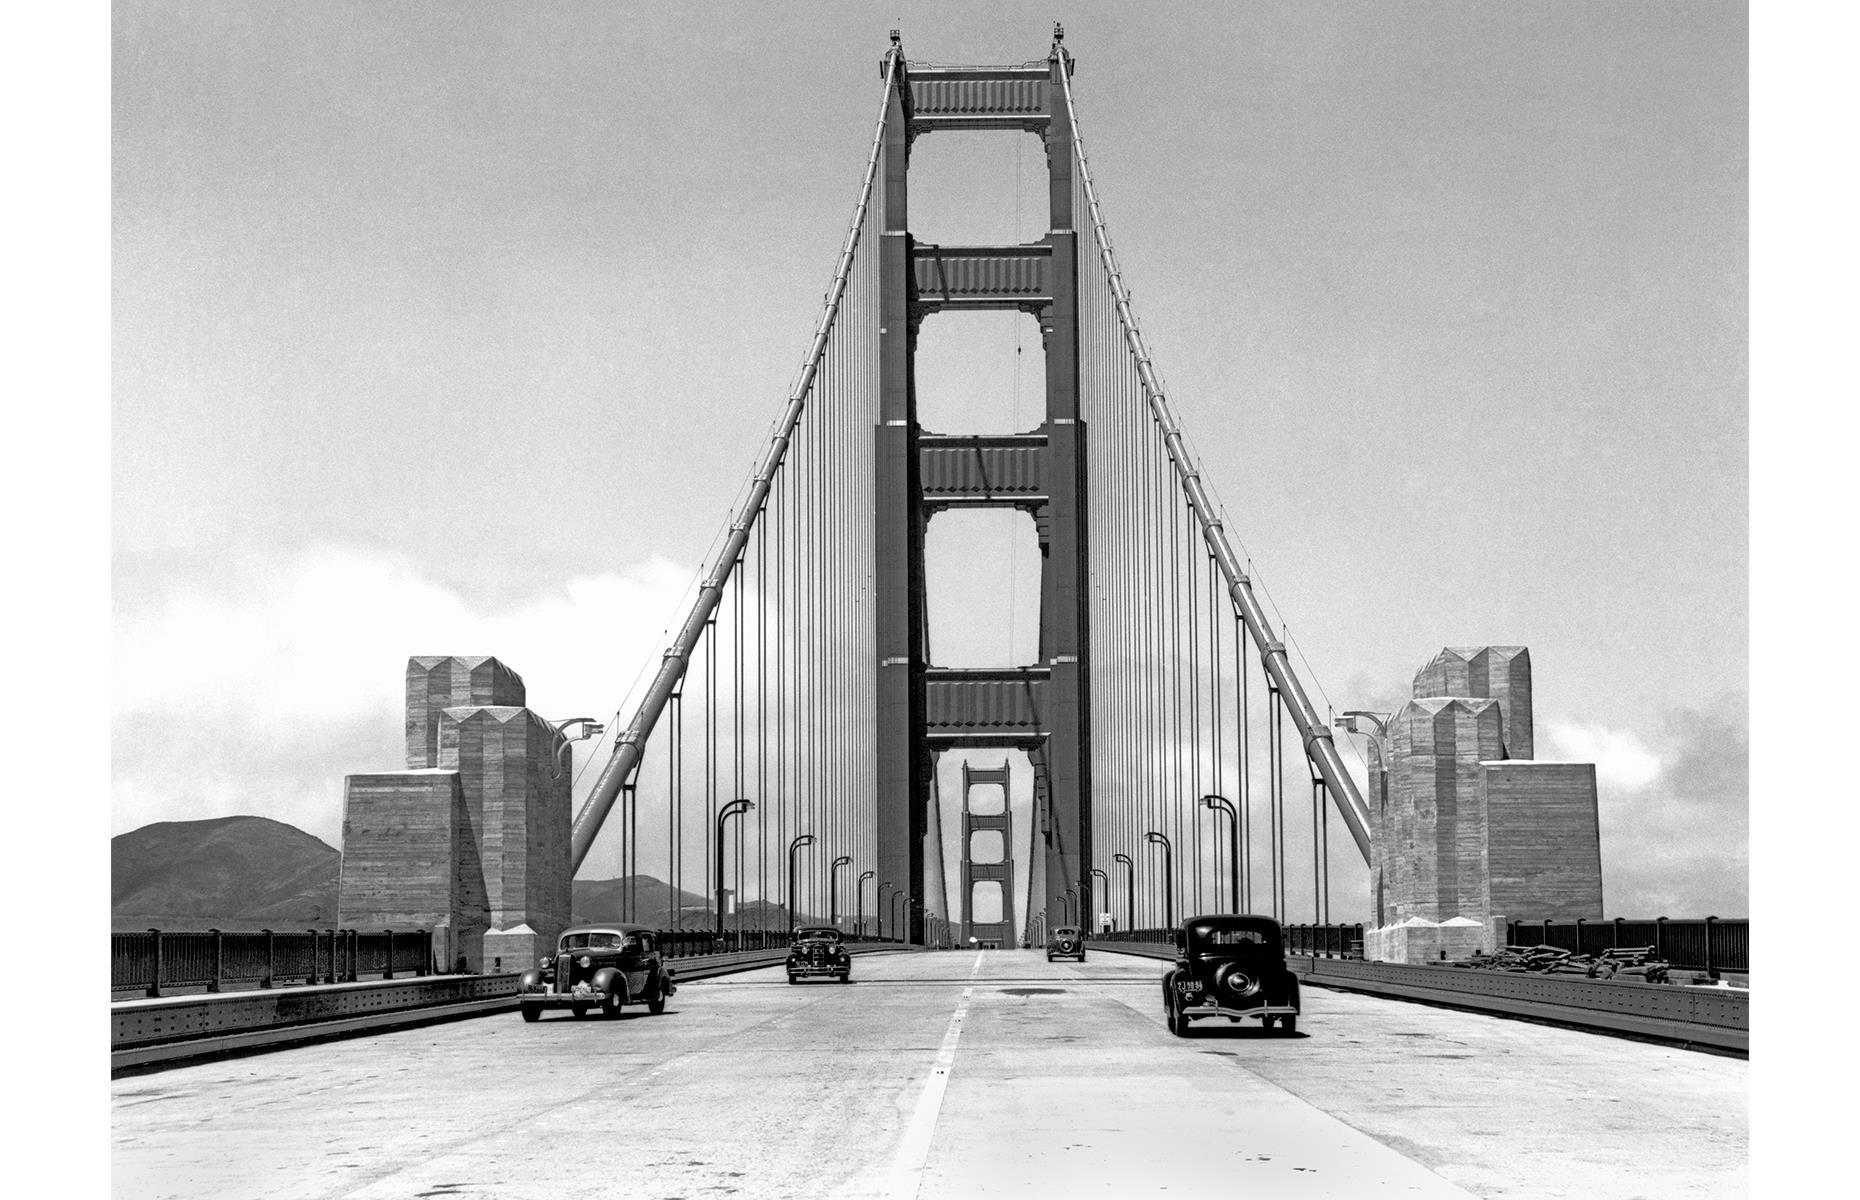 Slide 27 of 51: The red-orange Golden Gate Bridge has spanned its namesake strait since 1937, and at the time it was the longest and tallest suspension bridge in the world. Pictured here on 24 May 1937, a few days before its official opening date, a small number of journalists were allowed to cross the bridge. Today, the bridge is crossed by 100,000 vehicles per day. These are the most impressive bridges in every state and DC.